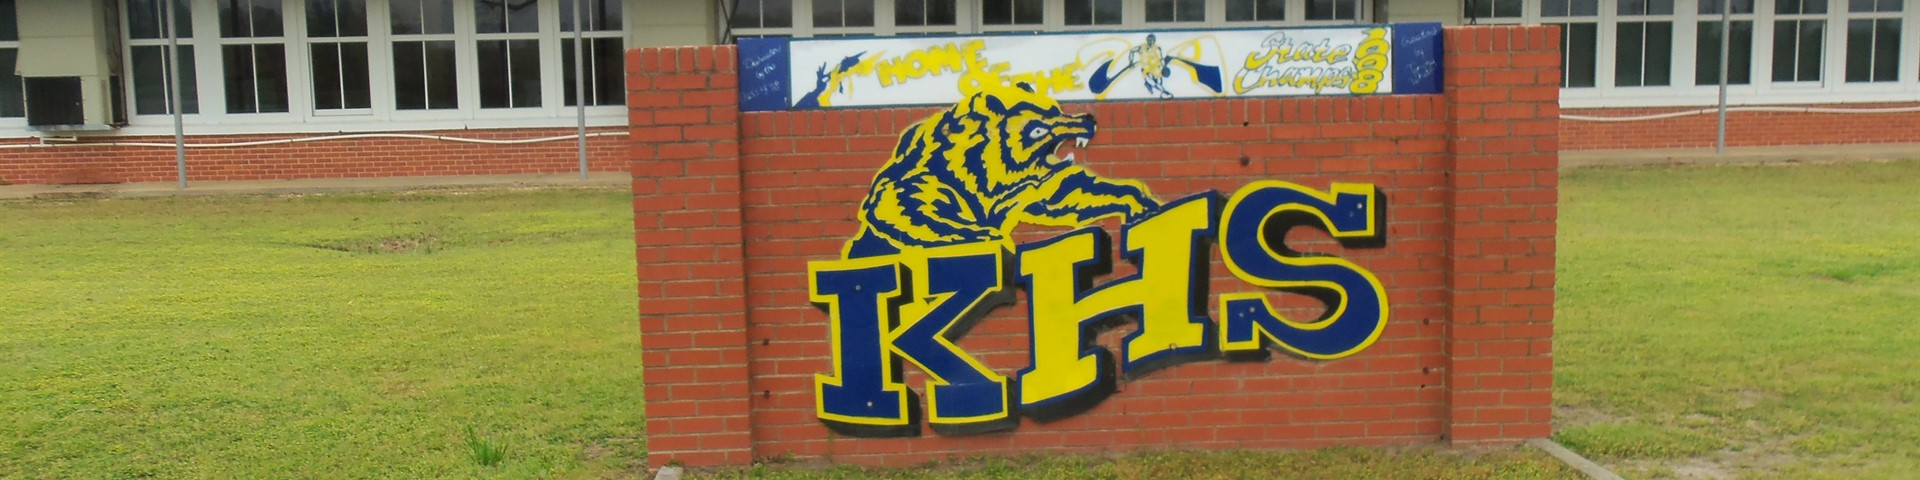 Keith High School